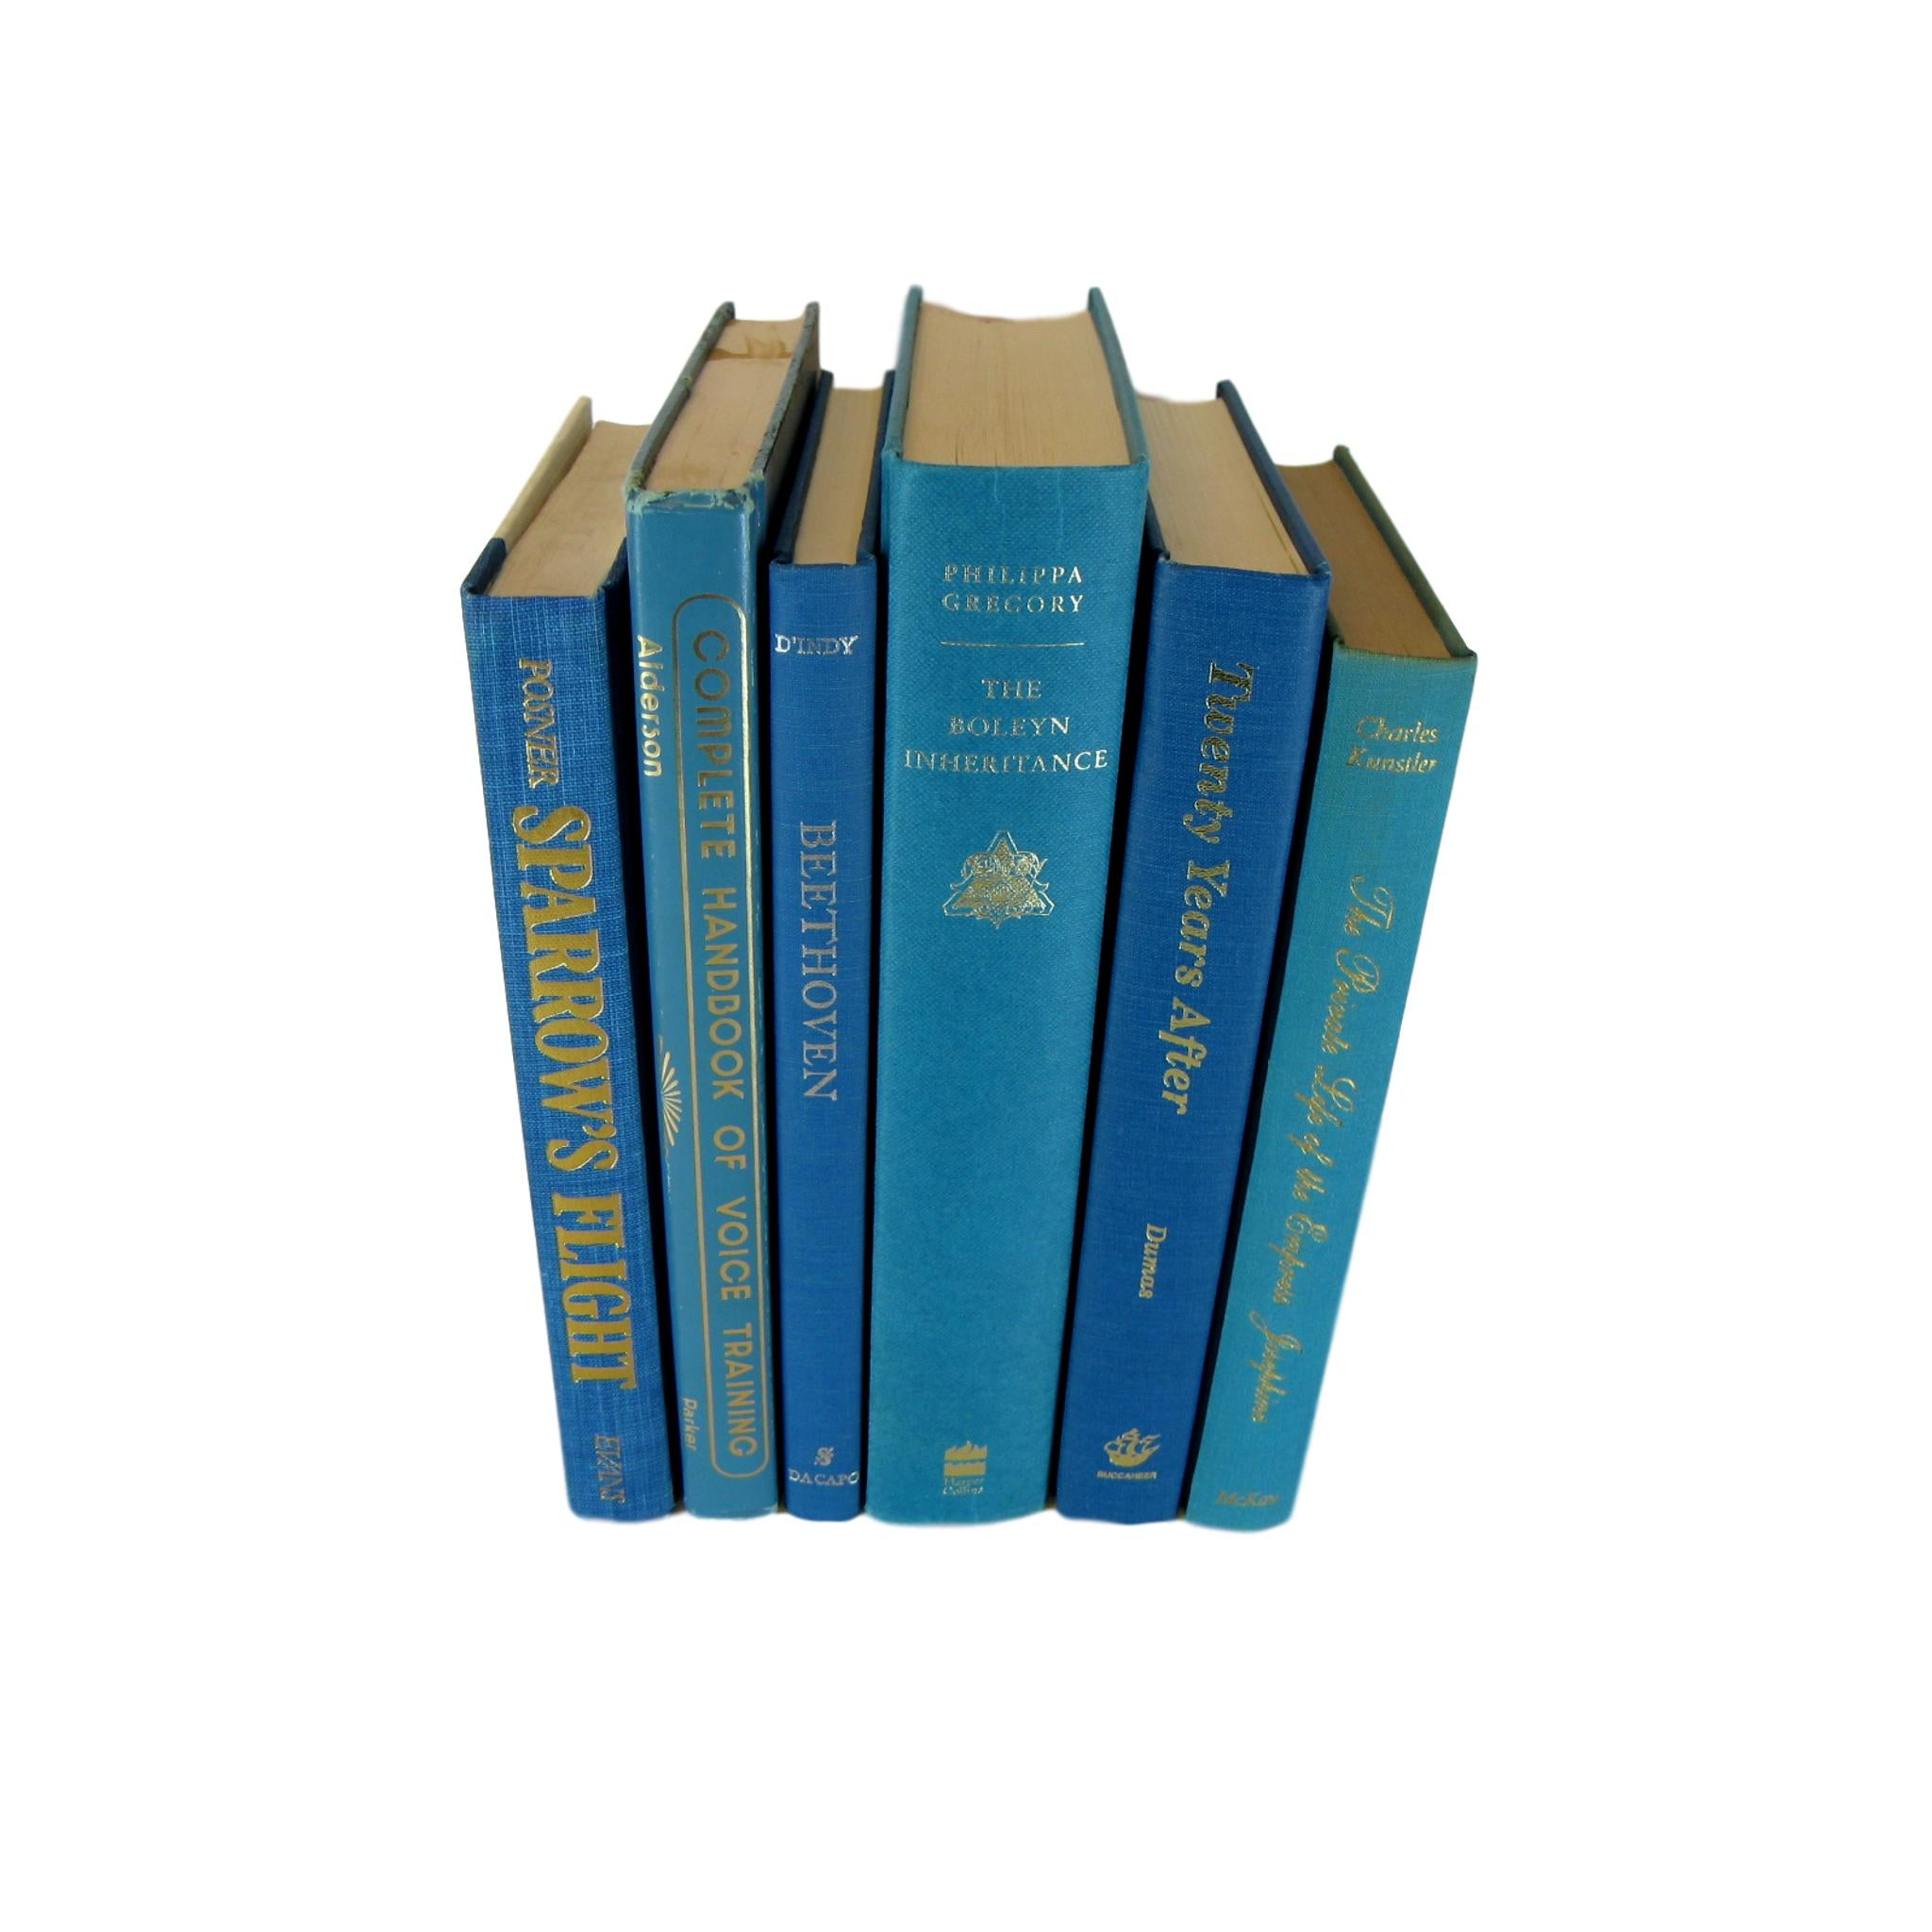 Ocean Blue Decorative Books for Shelf Decor, S/6 - Decades of Vintage